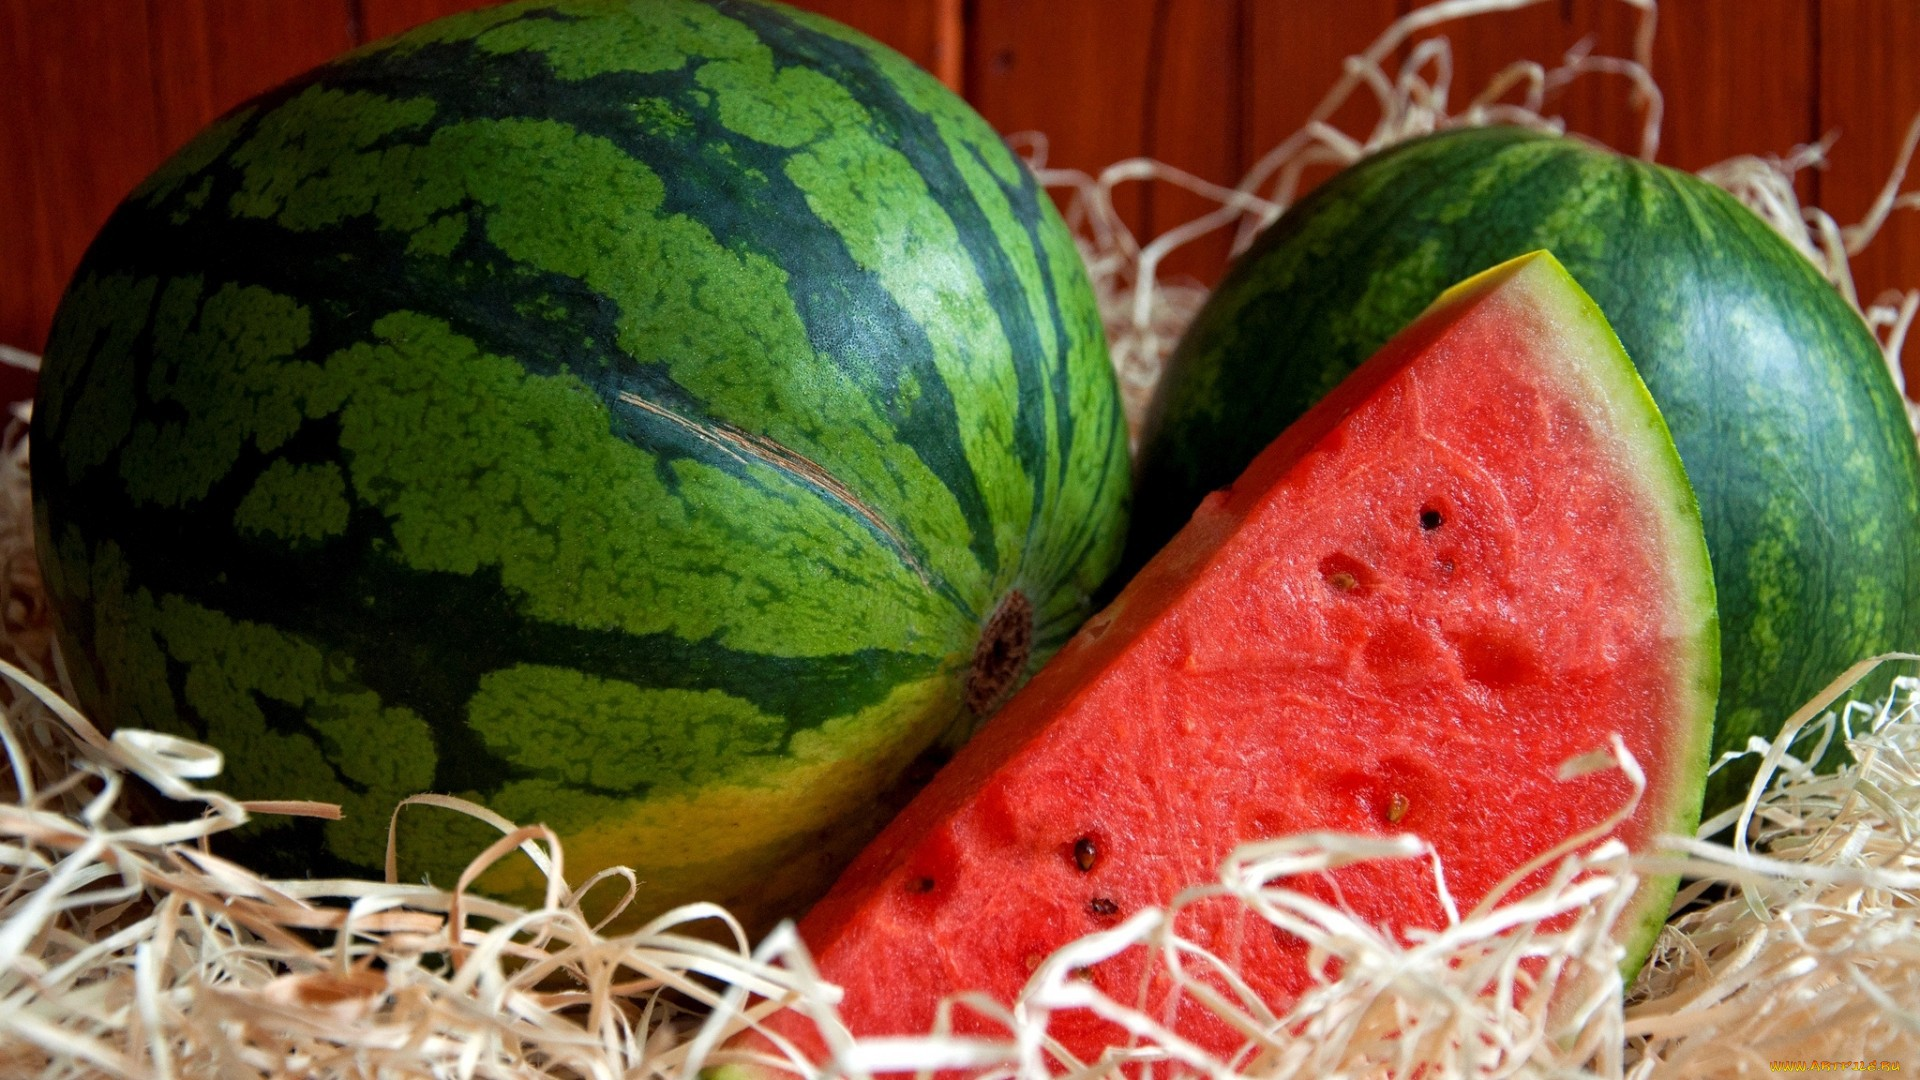 Watermelon Wallpapers Images Photos Pictures Backgrounds